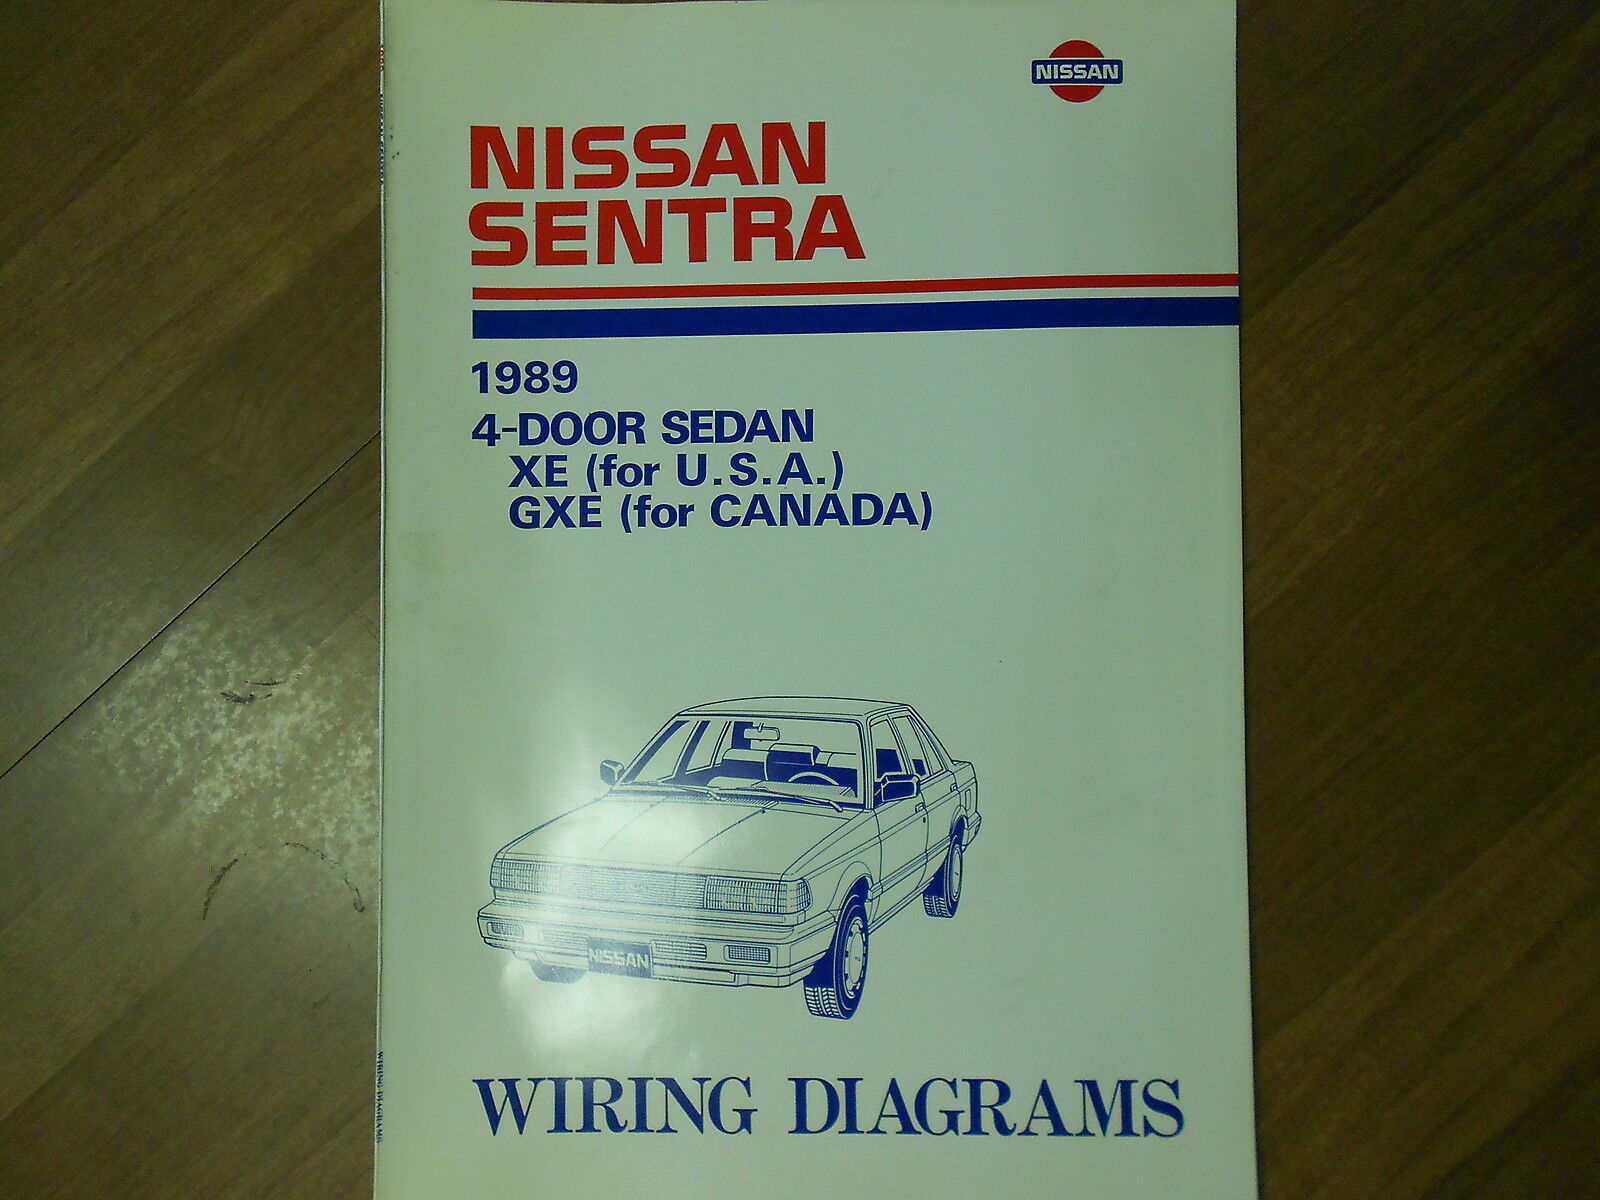 1989 Nissan Sentra 4 Door Sedan Xe Gxe Wiring Diagram Service Repair Shop Manual 1 Of 8only 2 Available